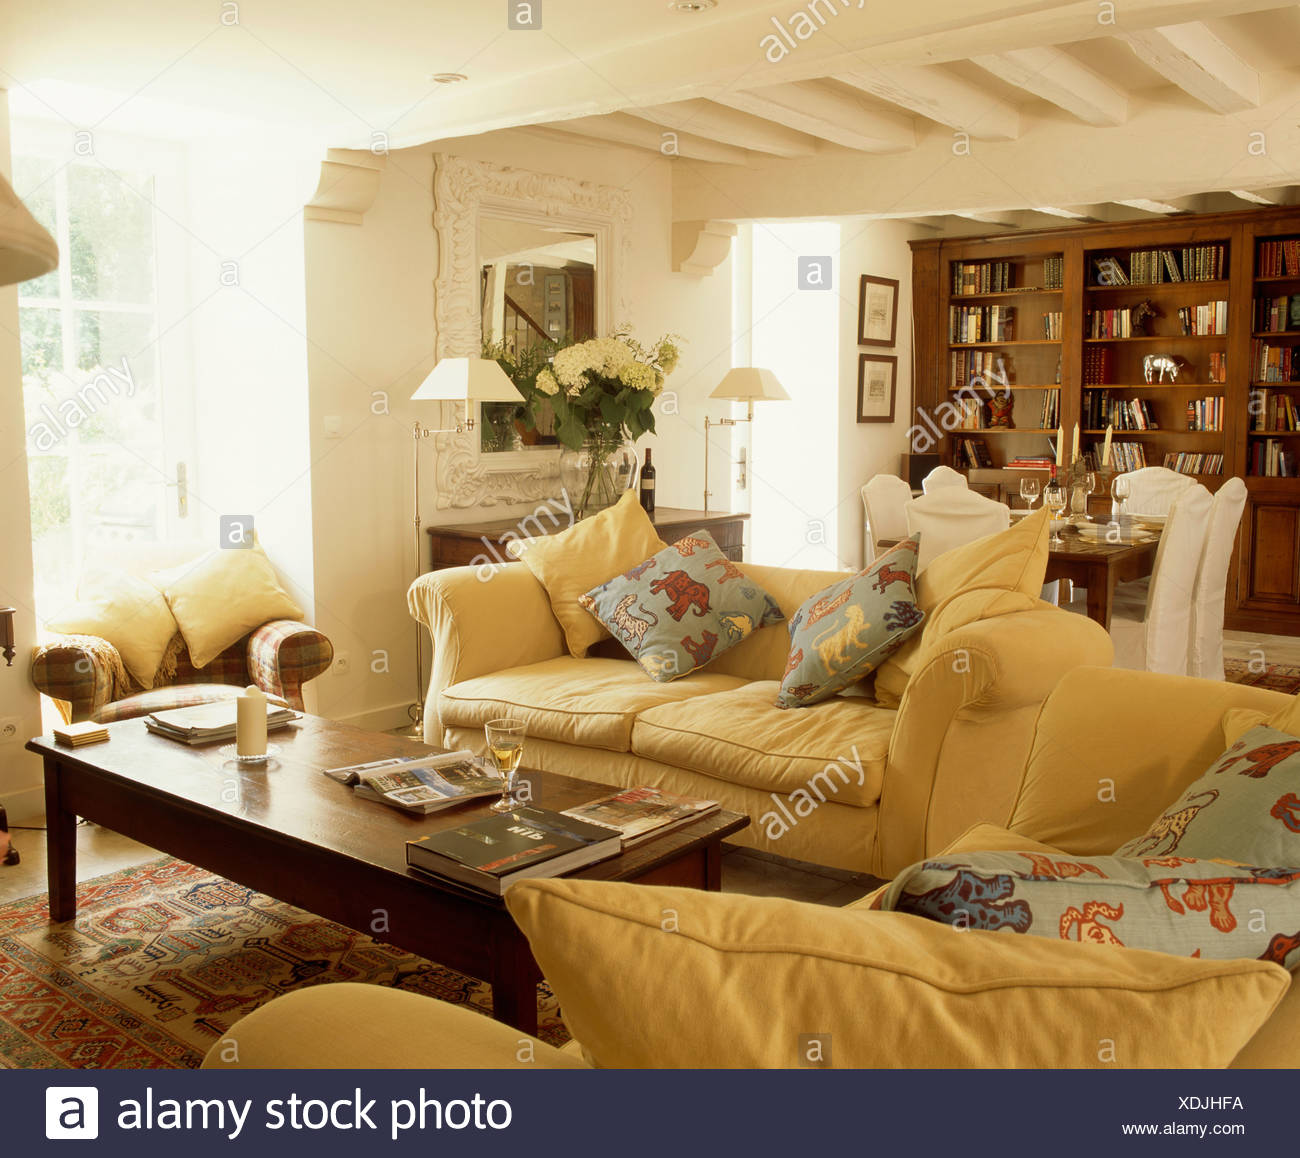 French Country Living Room Coffee Table: Yellow Sofas Cushions Stock Photos & Yellow Sofas Cushions